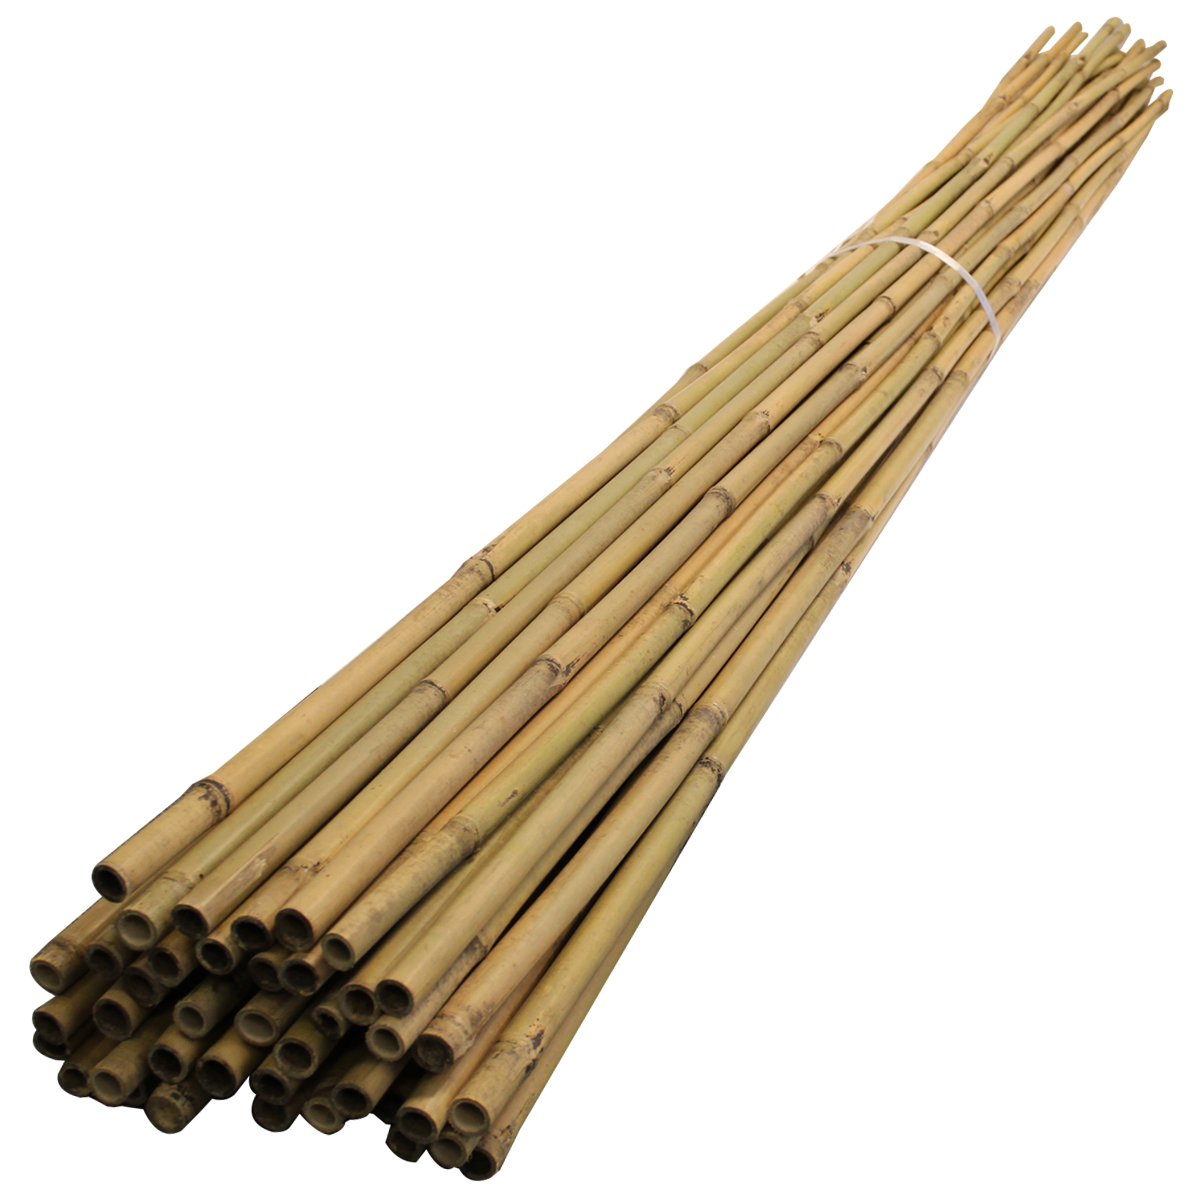 1.8m Bamboo (100 pack) Garden Canes, 6ft,14-16mm dia.thick. Plant Support Poles. 180cm, 6', 1800mm long 6' Suregreen